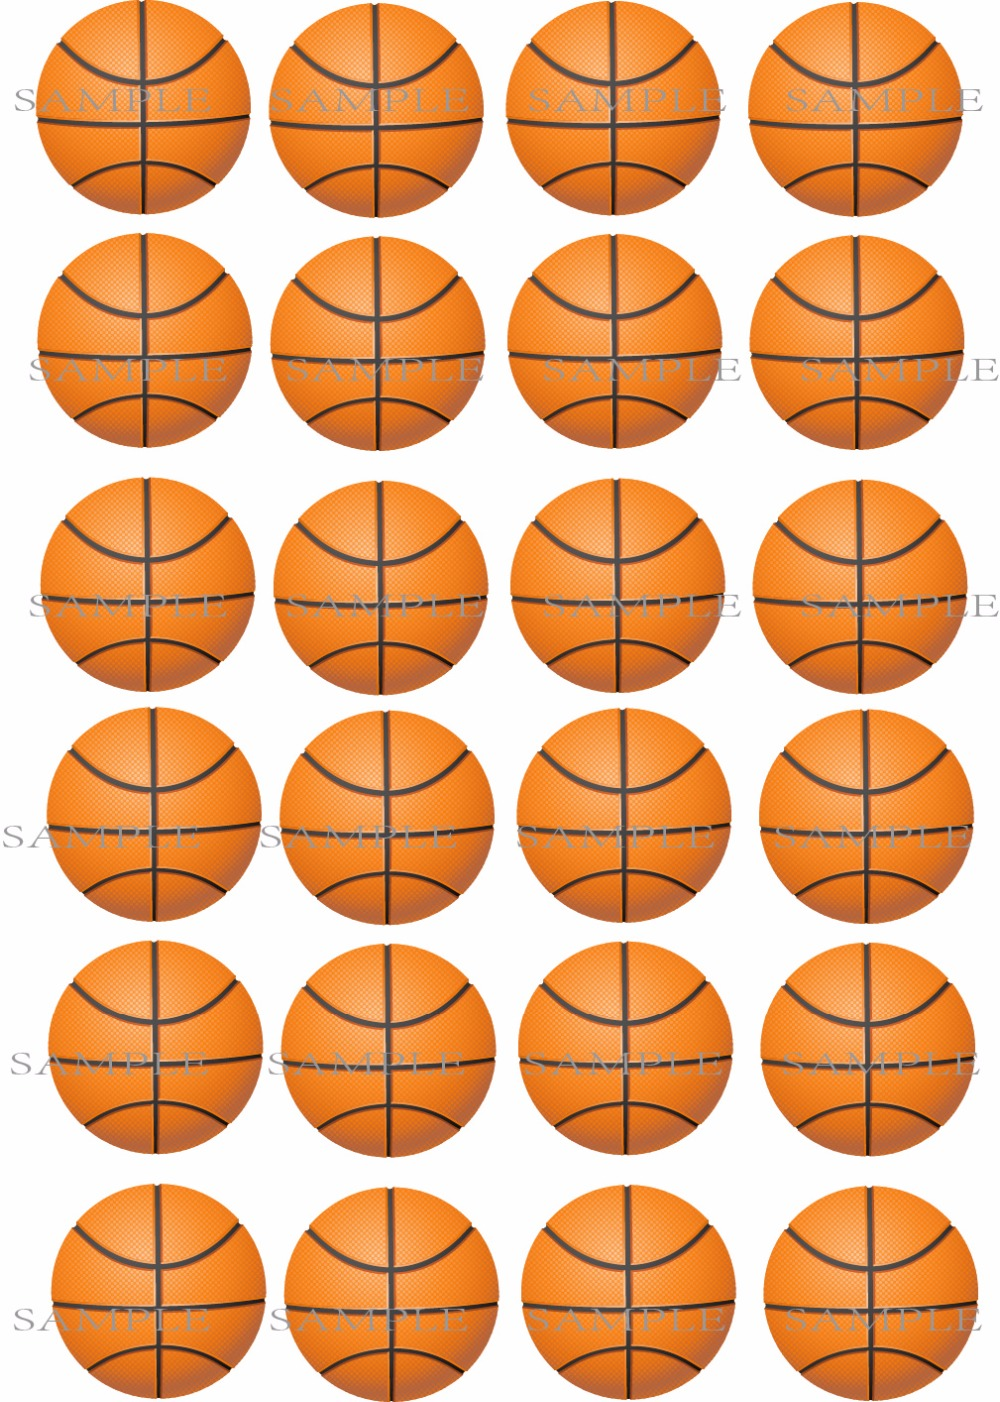 24 Basketball Sports Edible Cake Topper Wafer Rice Paper Cake Cookie